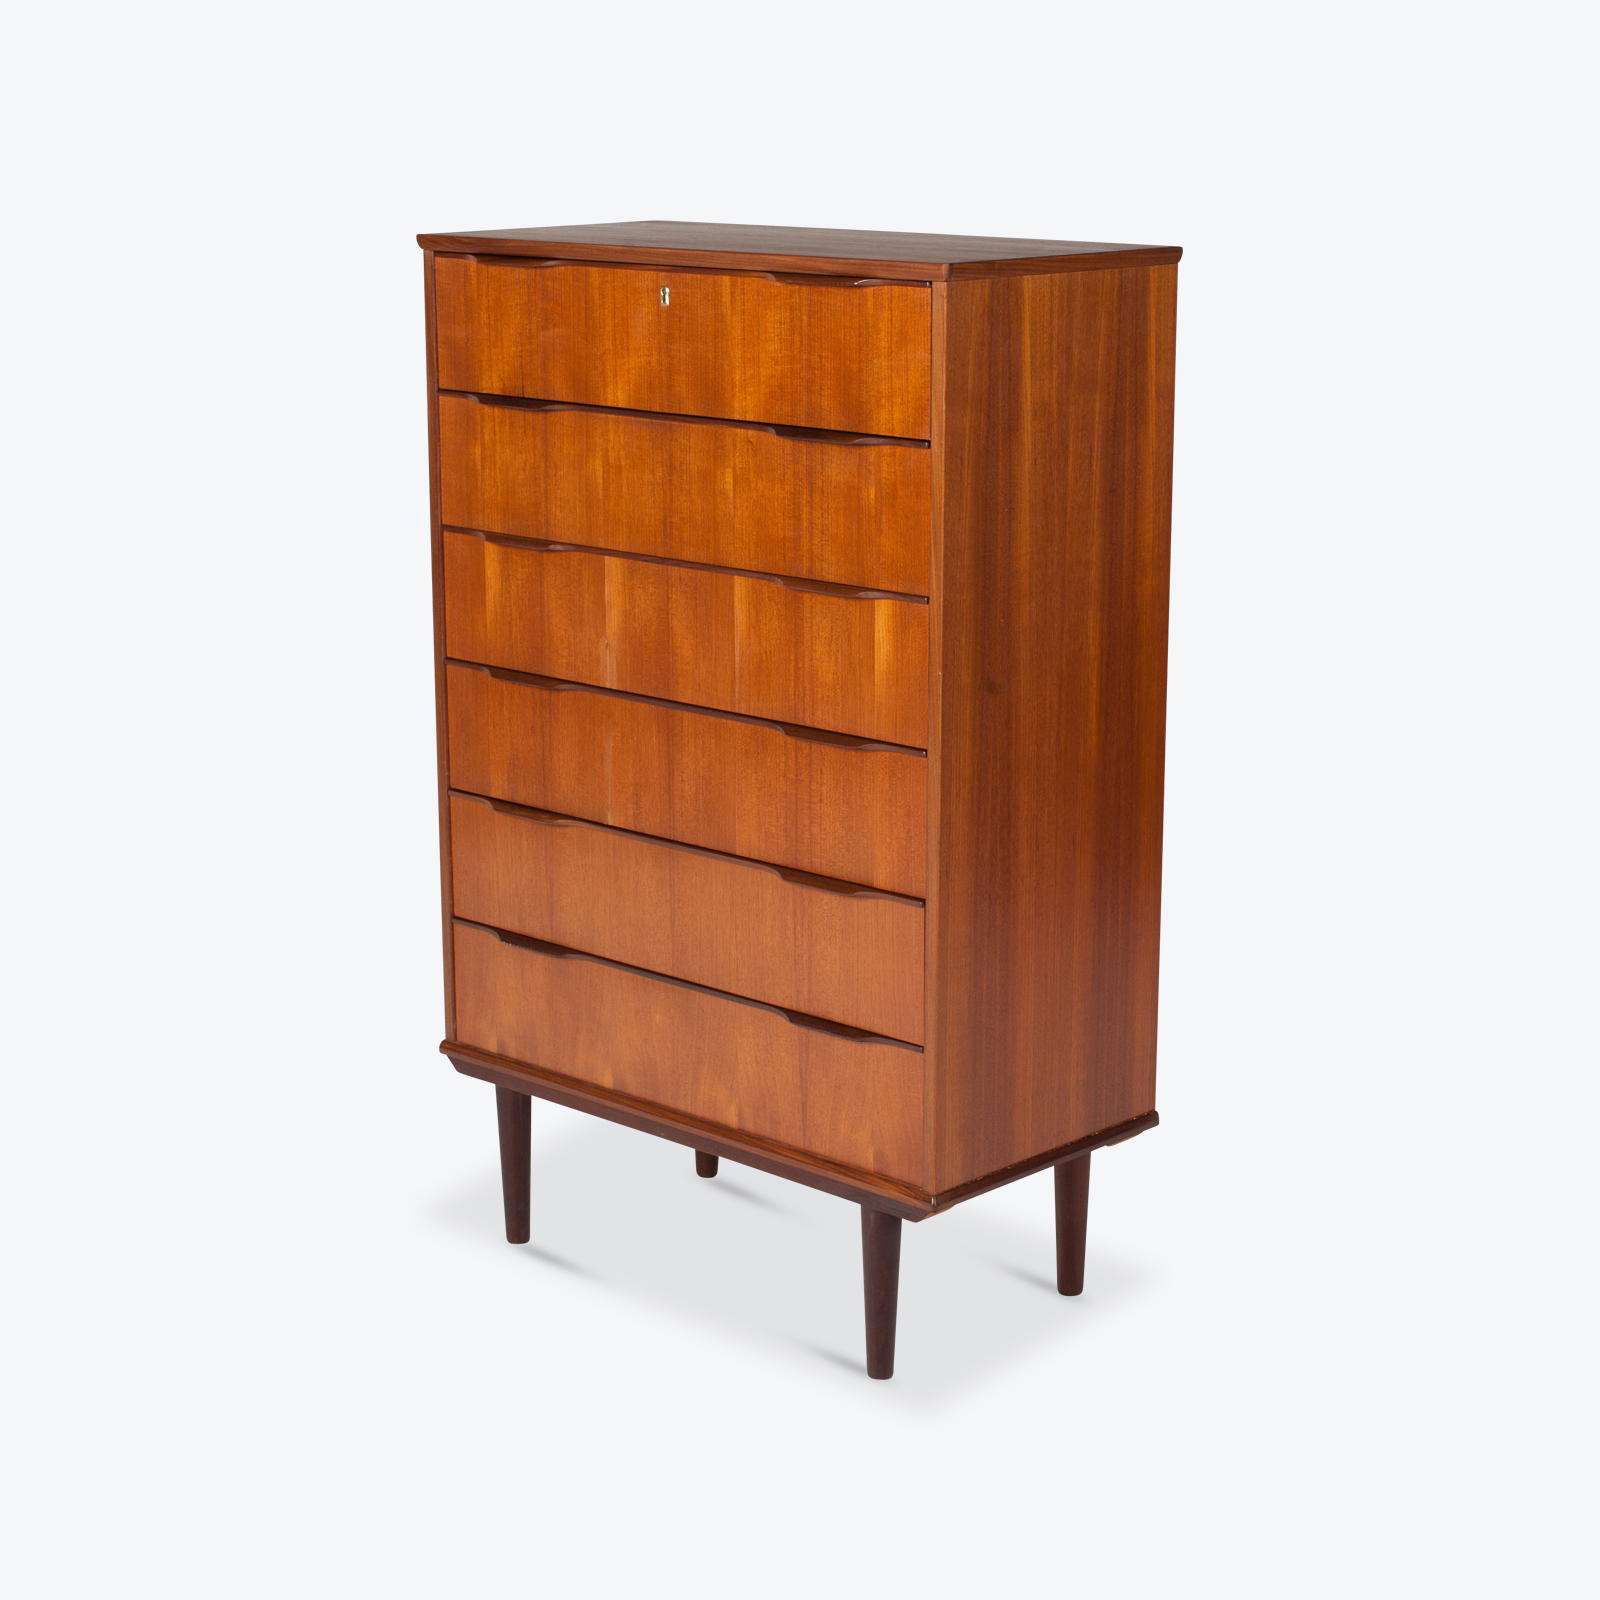 Deep Chest In Teak With Six Drawers And Lipped Handles, 1960s, Denmark Hero 1